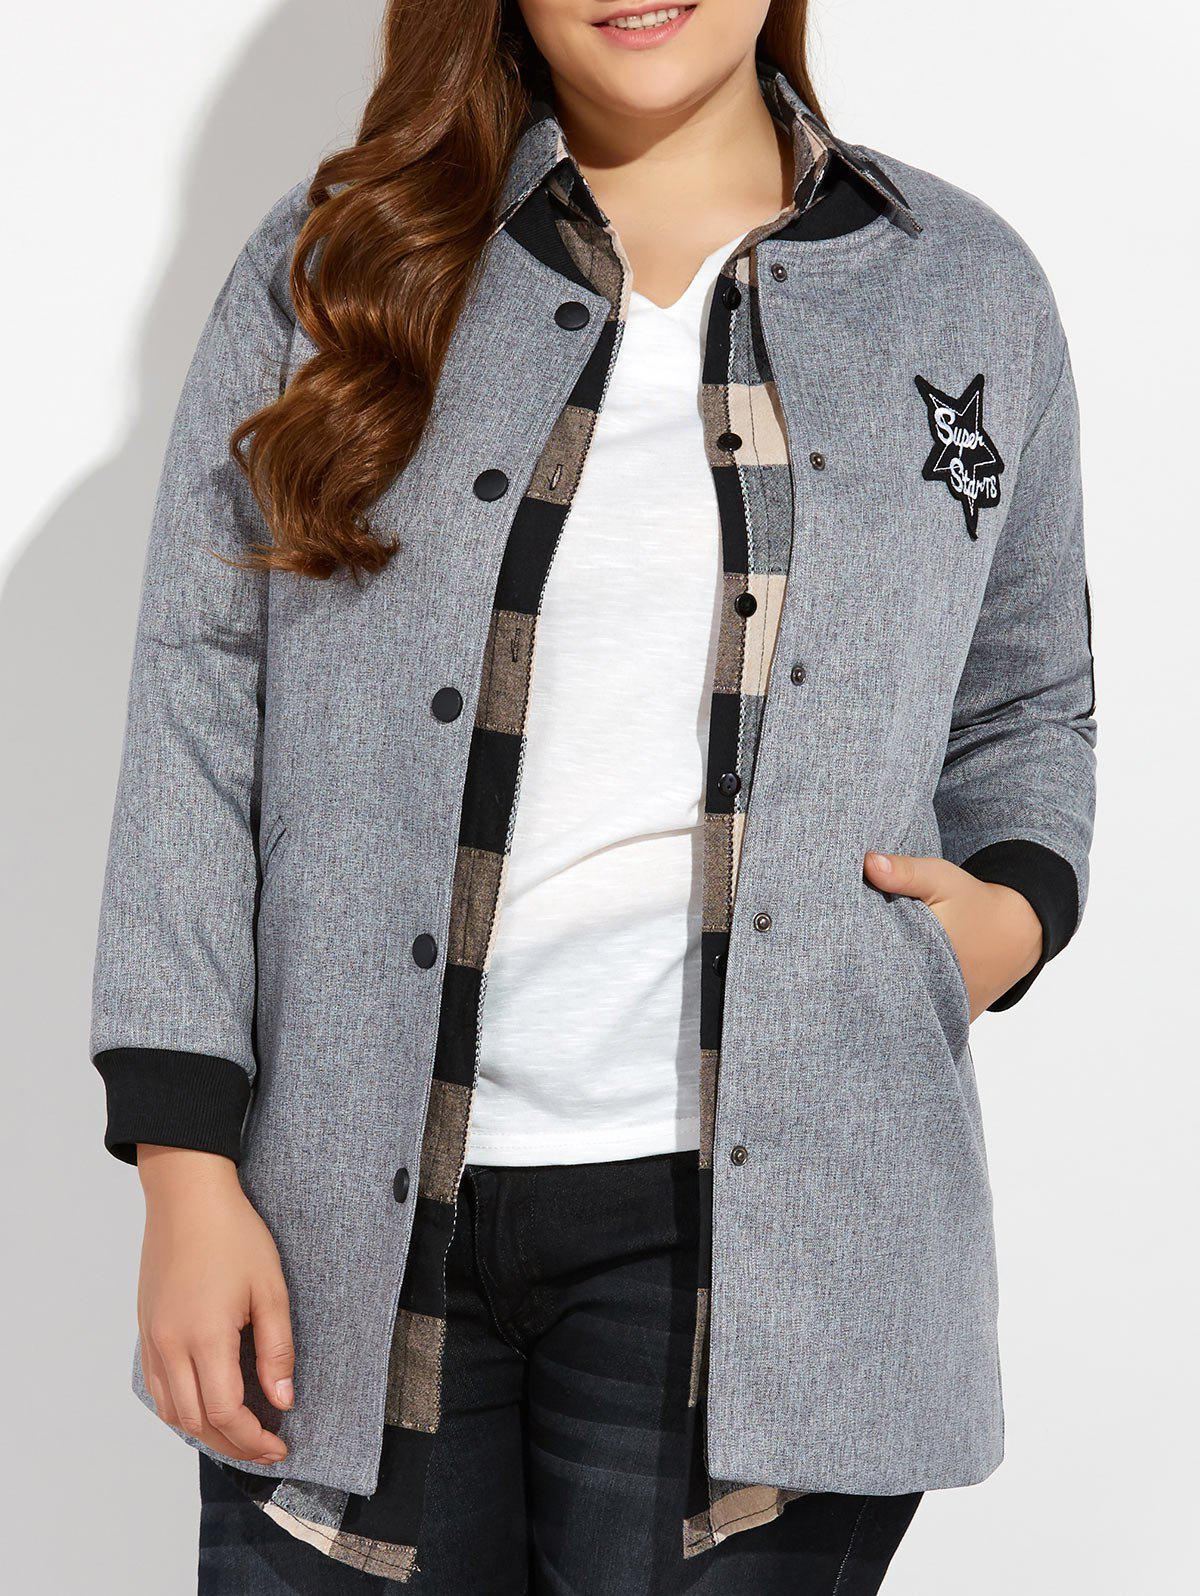 Plus Size Number Patched Bomber Jacket - GRAY 3XL